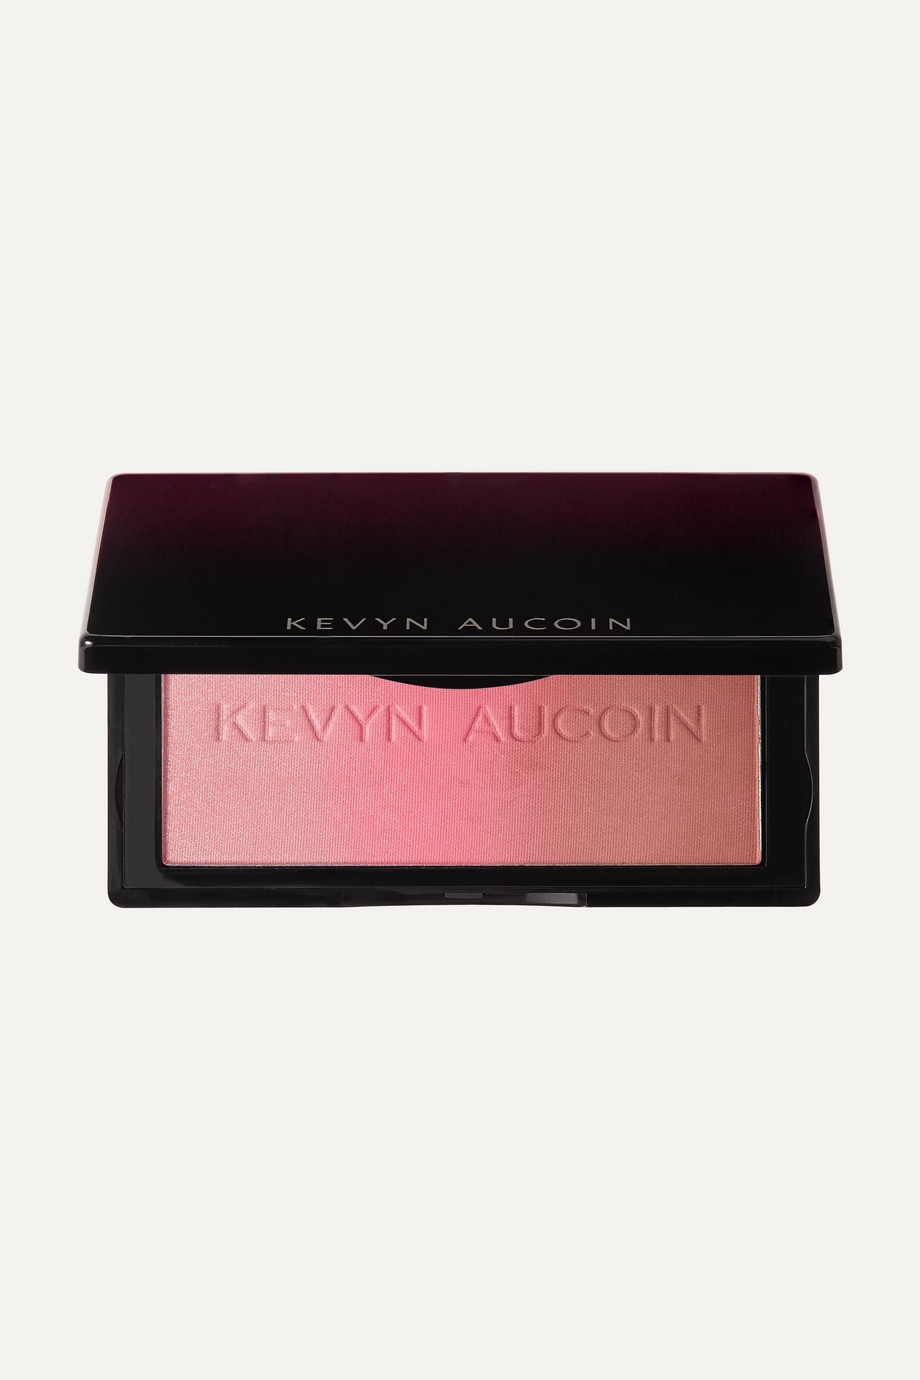 Kevyn Aucoin The Neo Blush - Pink Sand